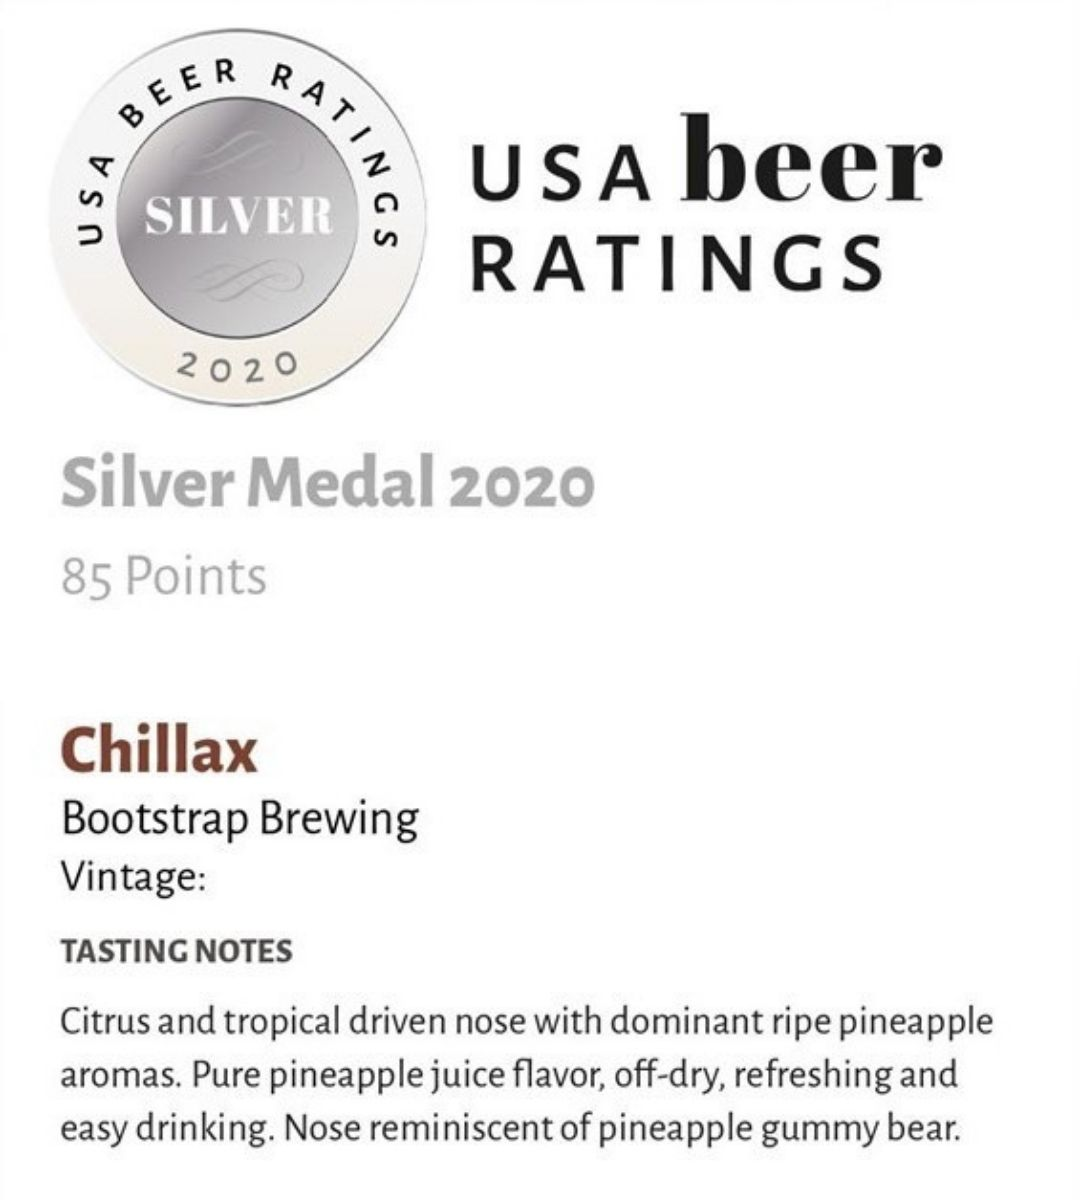 Chillax Silver Medal USA Beer Ratings